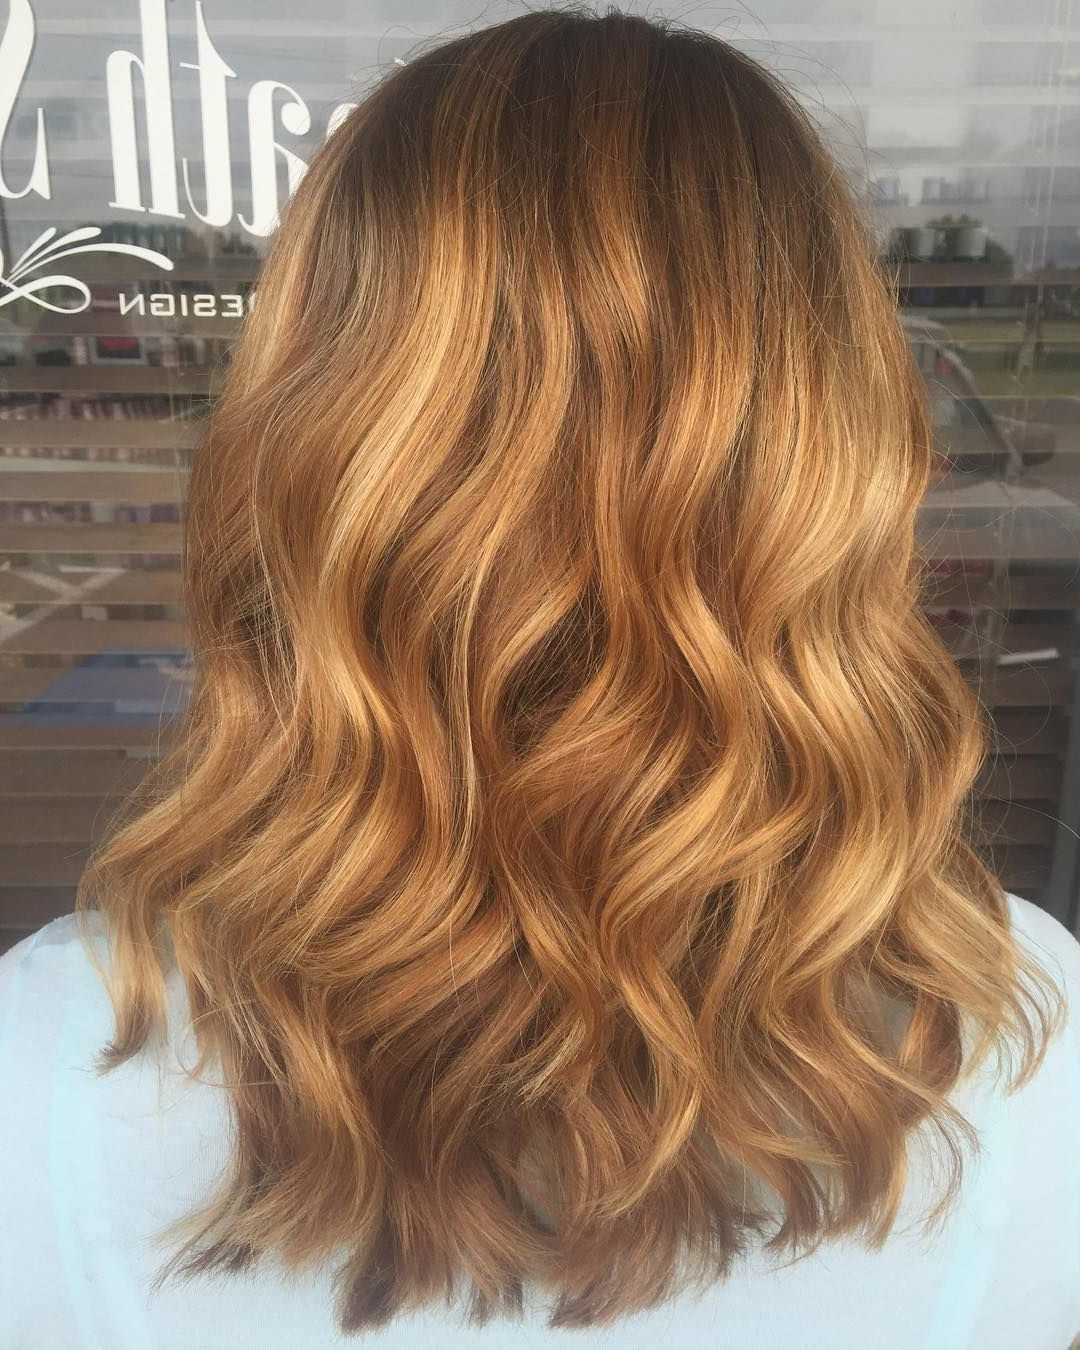 Wavy Strawberry Blonde Hair With Some Blonde Balayage Intended For Strawberry Blonde Balayage Hairstyles (View 13 of 20)